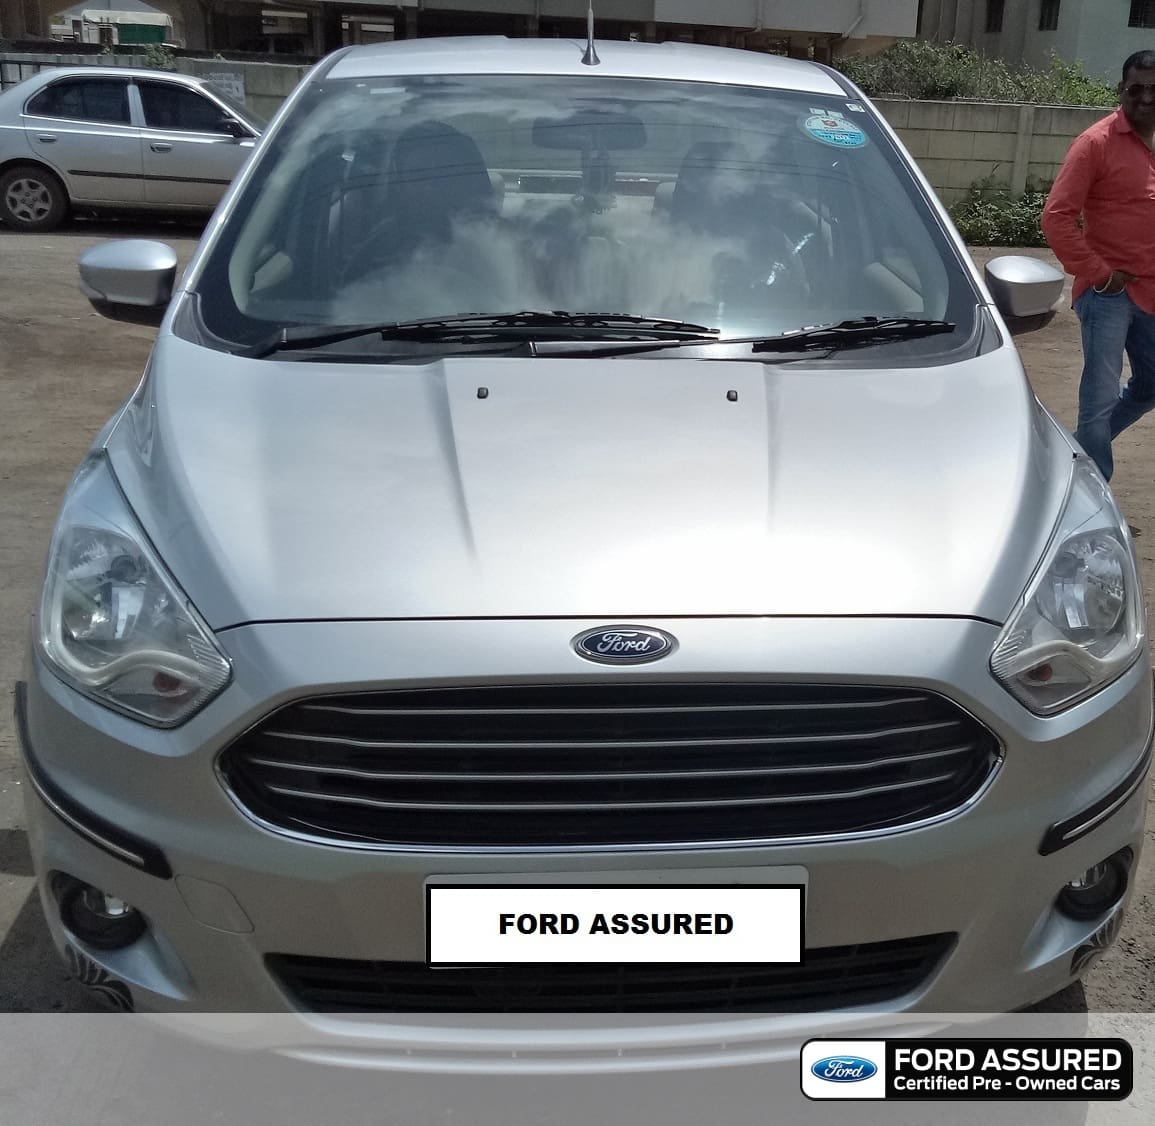 Ford Aspire 1.2 Ti-VCT Trend